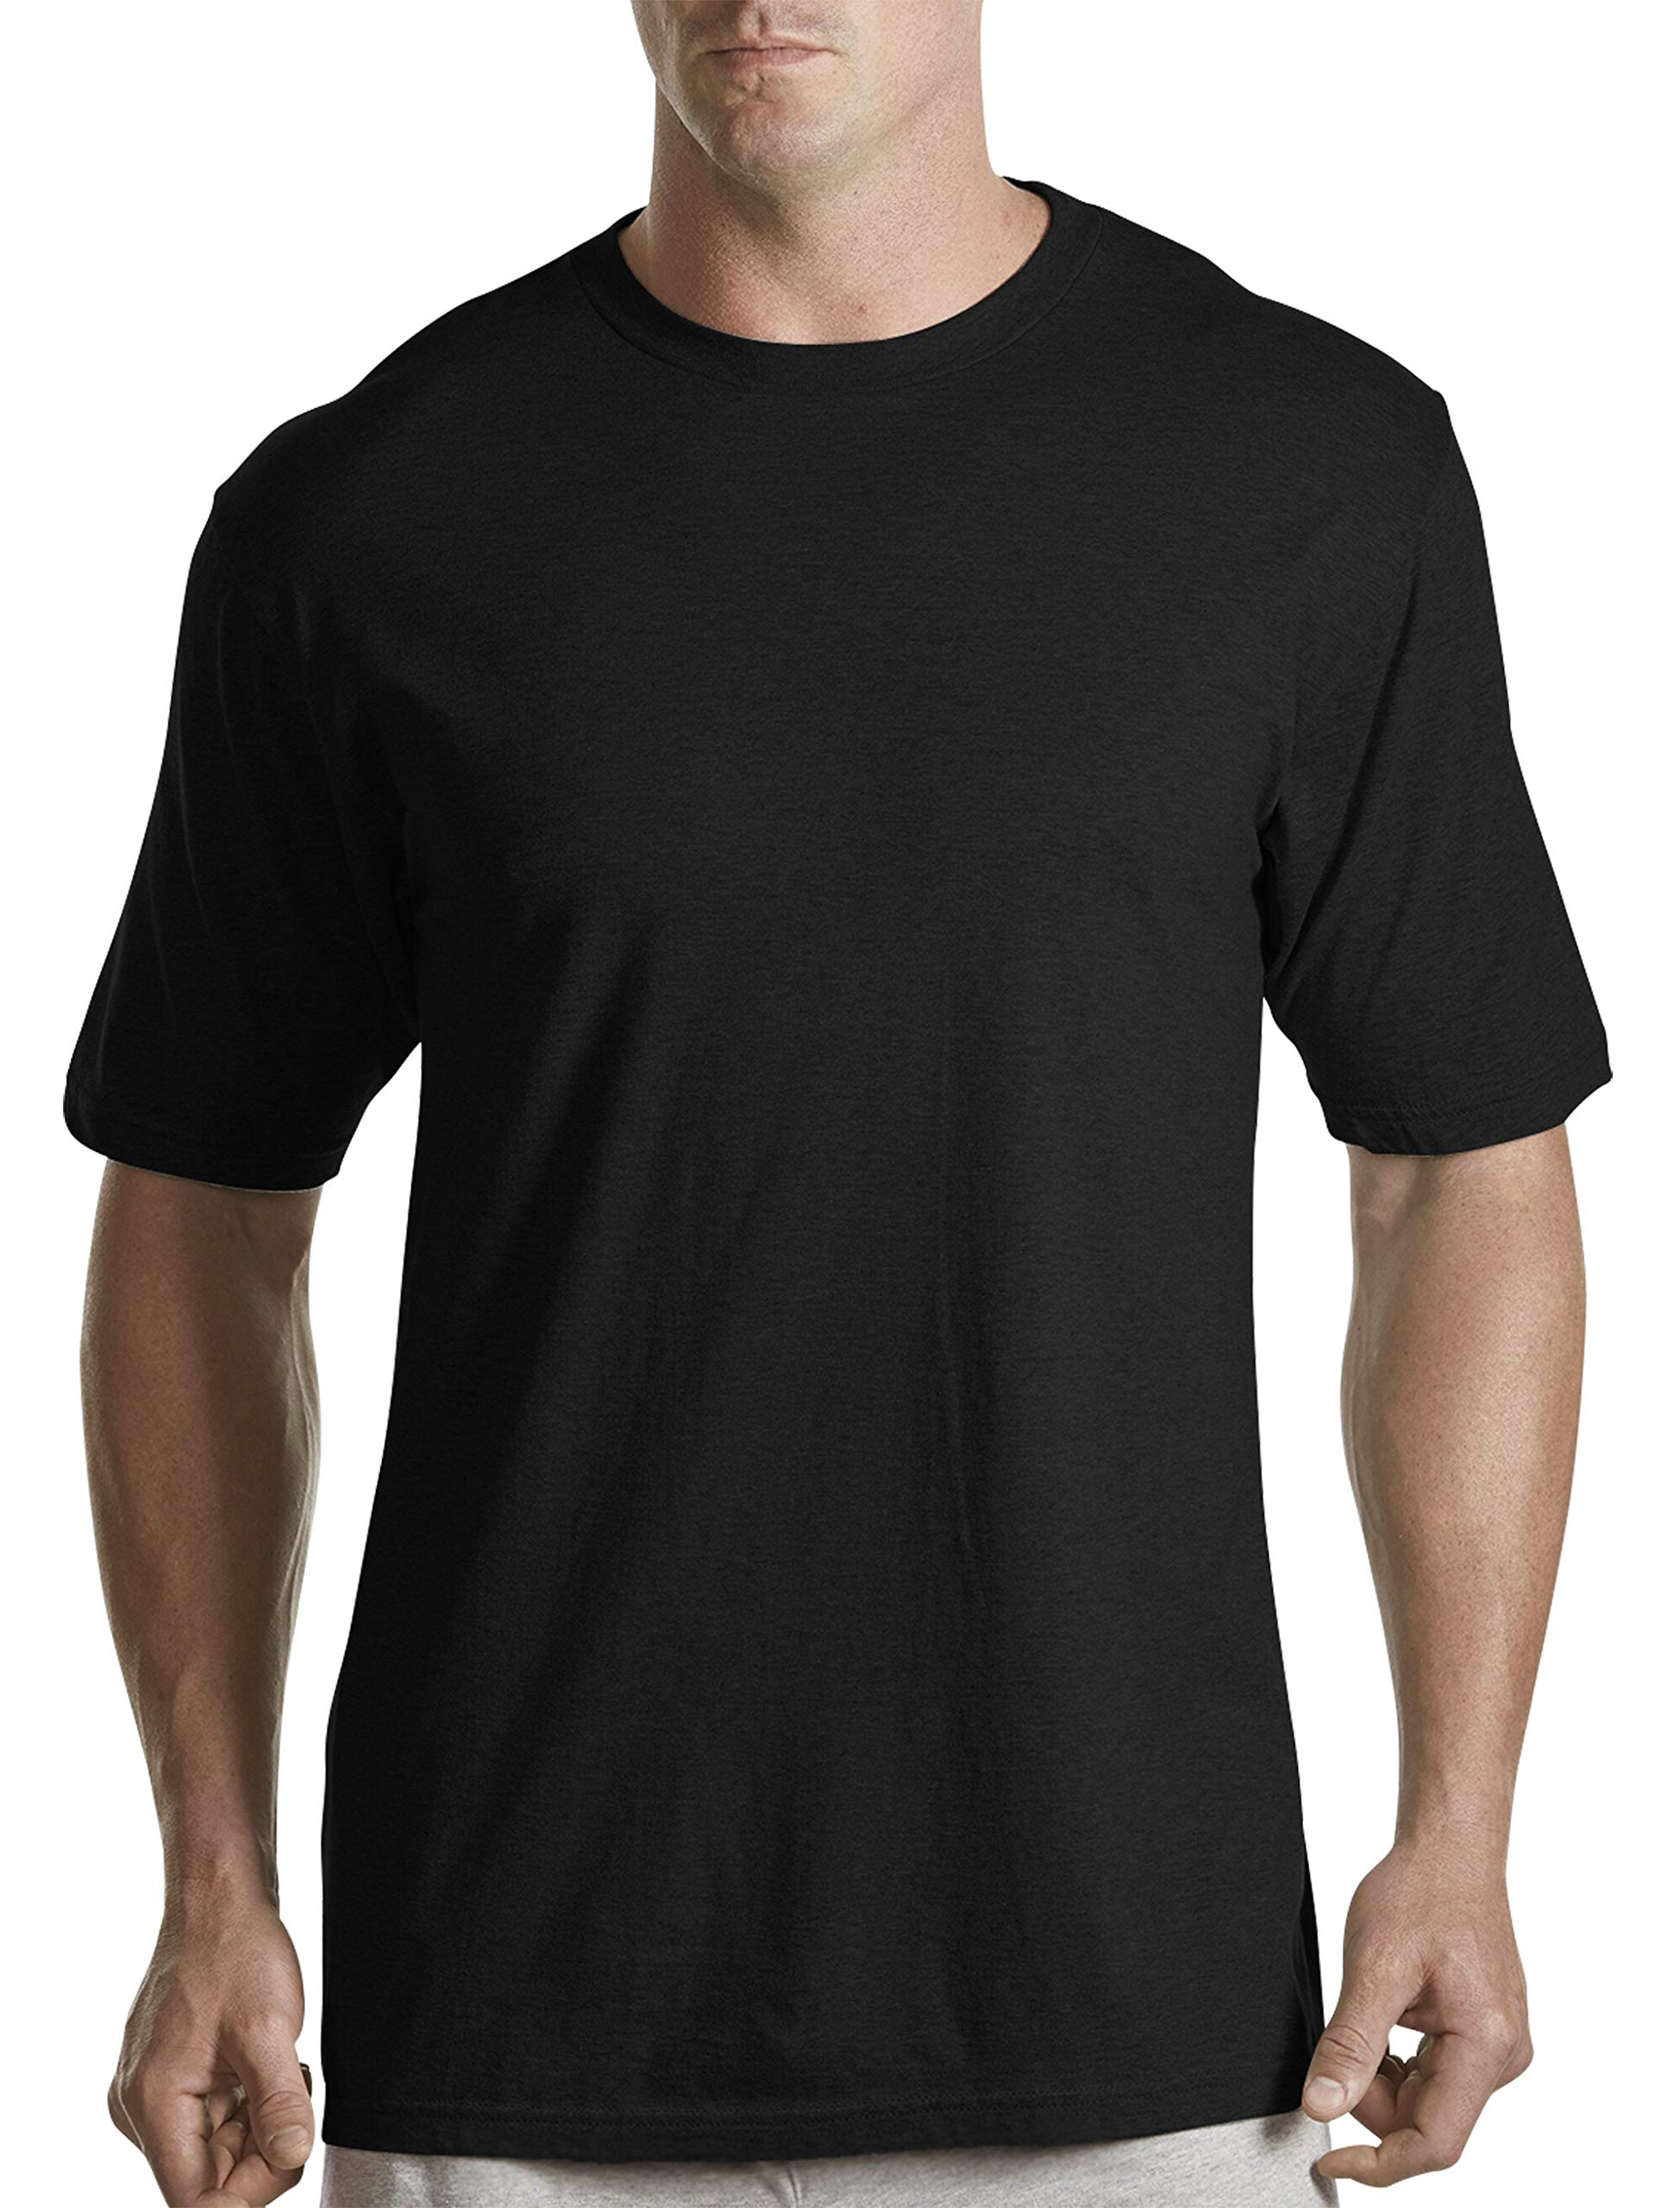 Harbor Bay by DXL Big and Tall 3-pk. Color Crewneck T-Shirts, Black, 7XLT by Harbor Bay